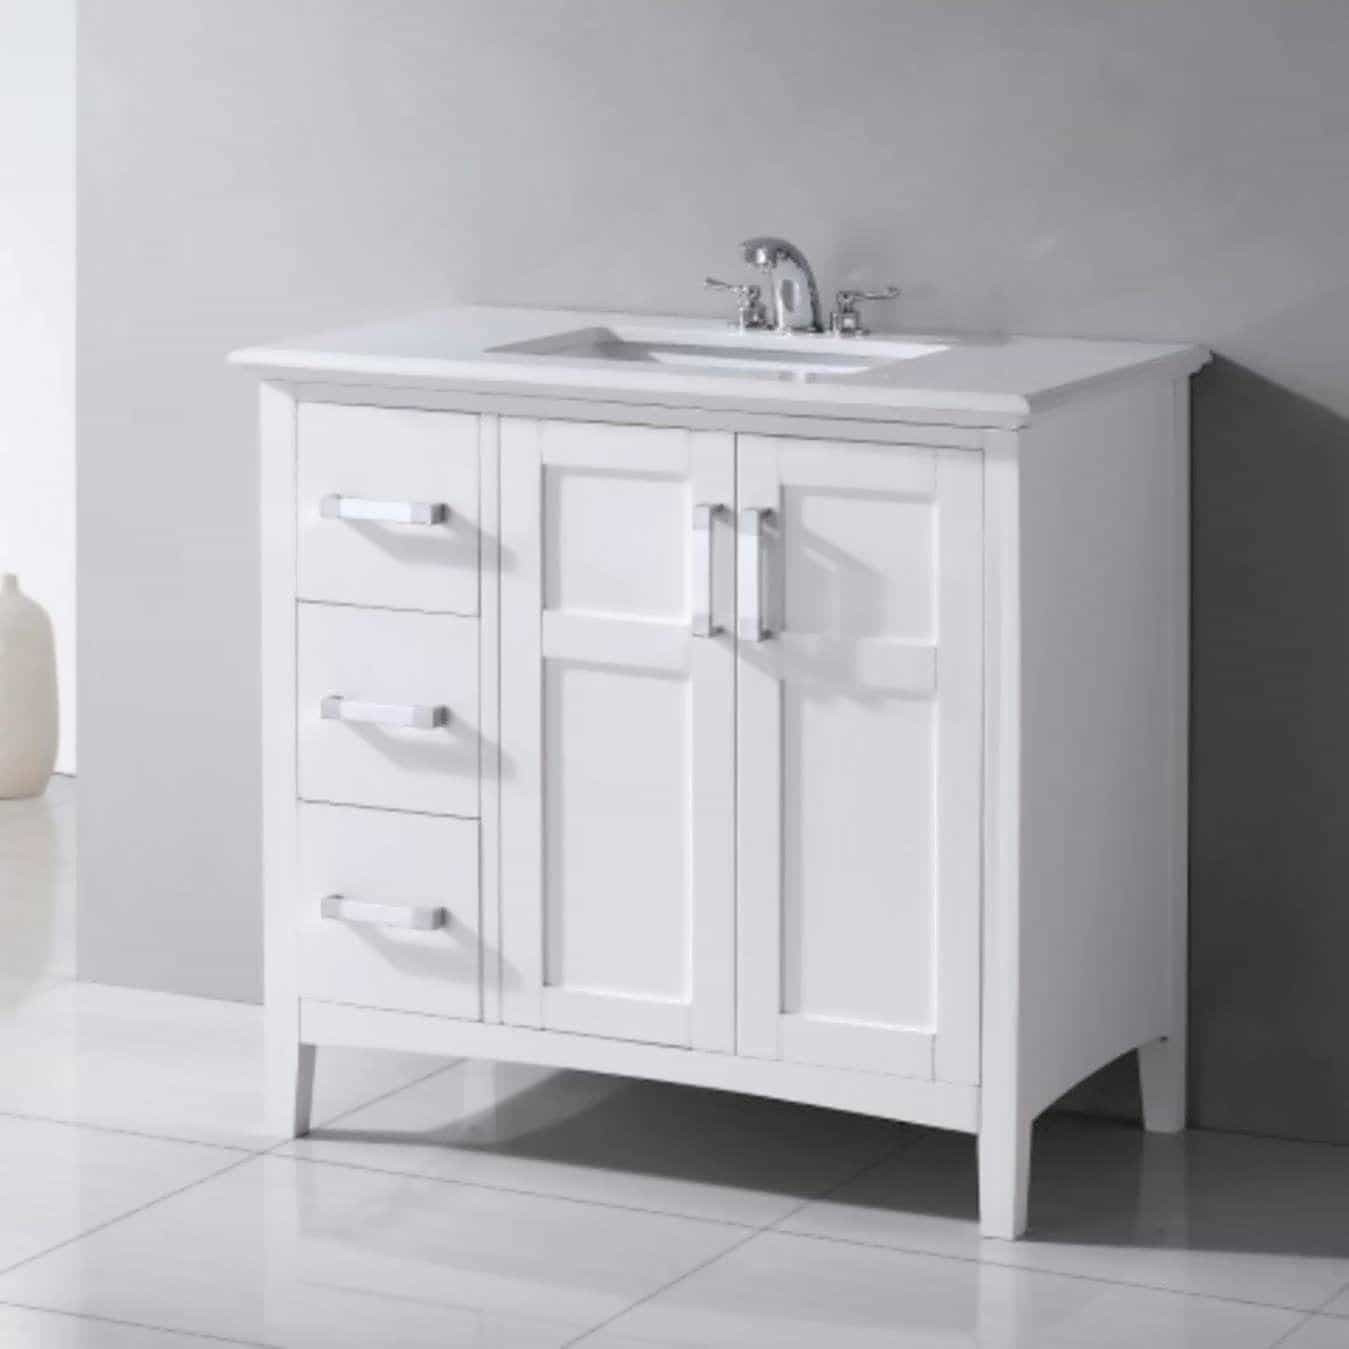 Best ideas about Cheap Bathroom Vanity . Save or Pin Cheap Bathroom Vanity in White Under $200 Cheap Bathroom Now.